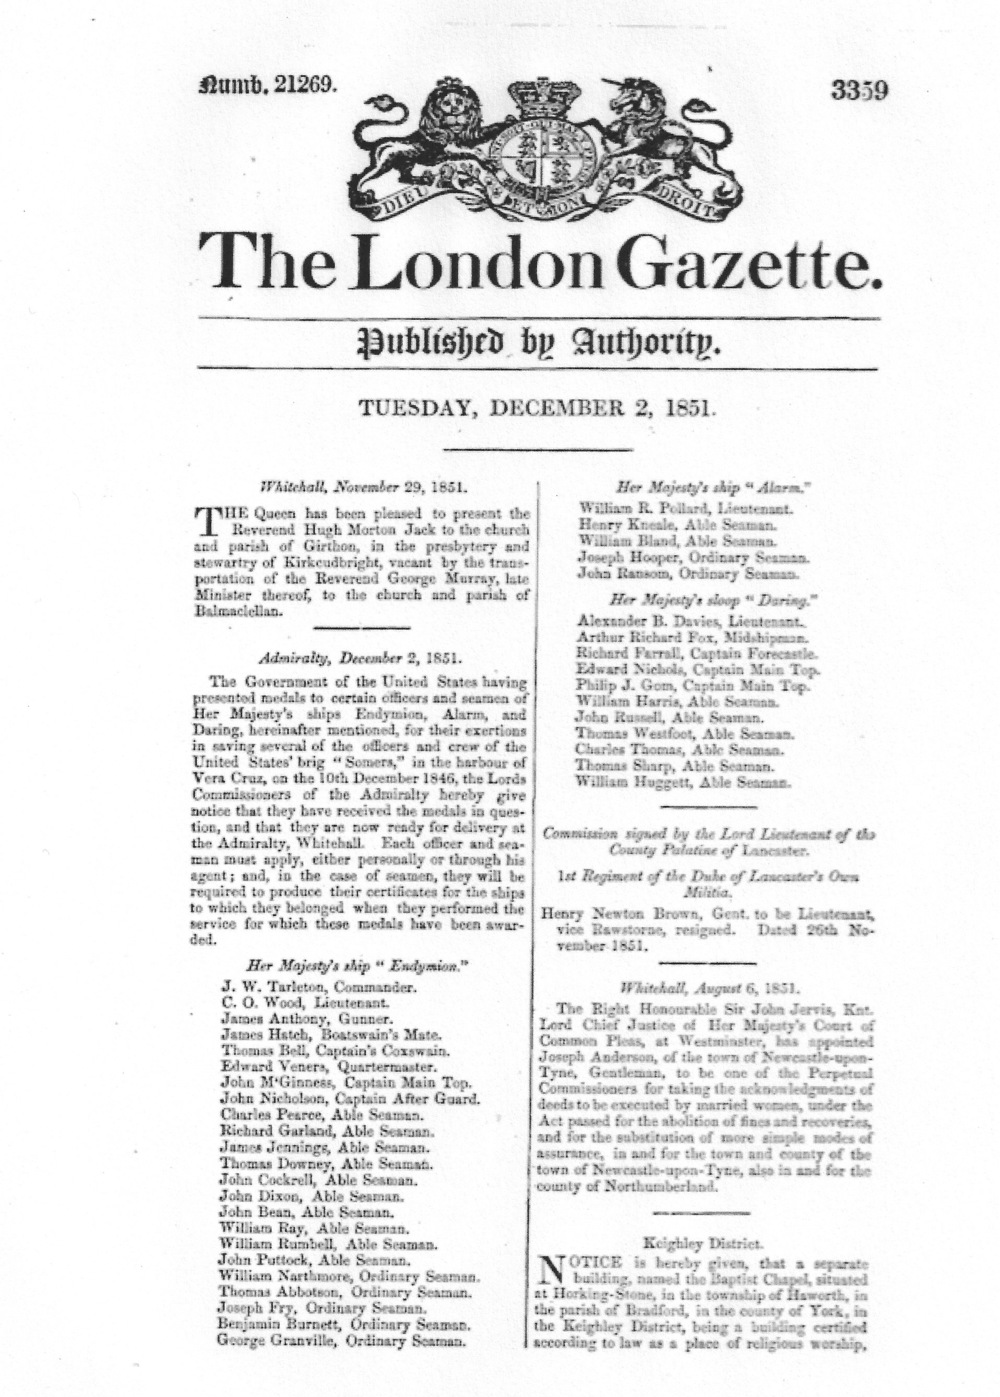 The London Gazette, December 2, 1851. Charles Thomas listed as one of sailors entitled to receive medal.